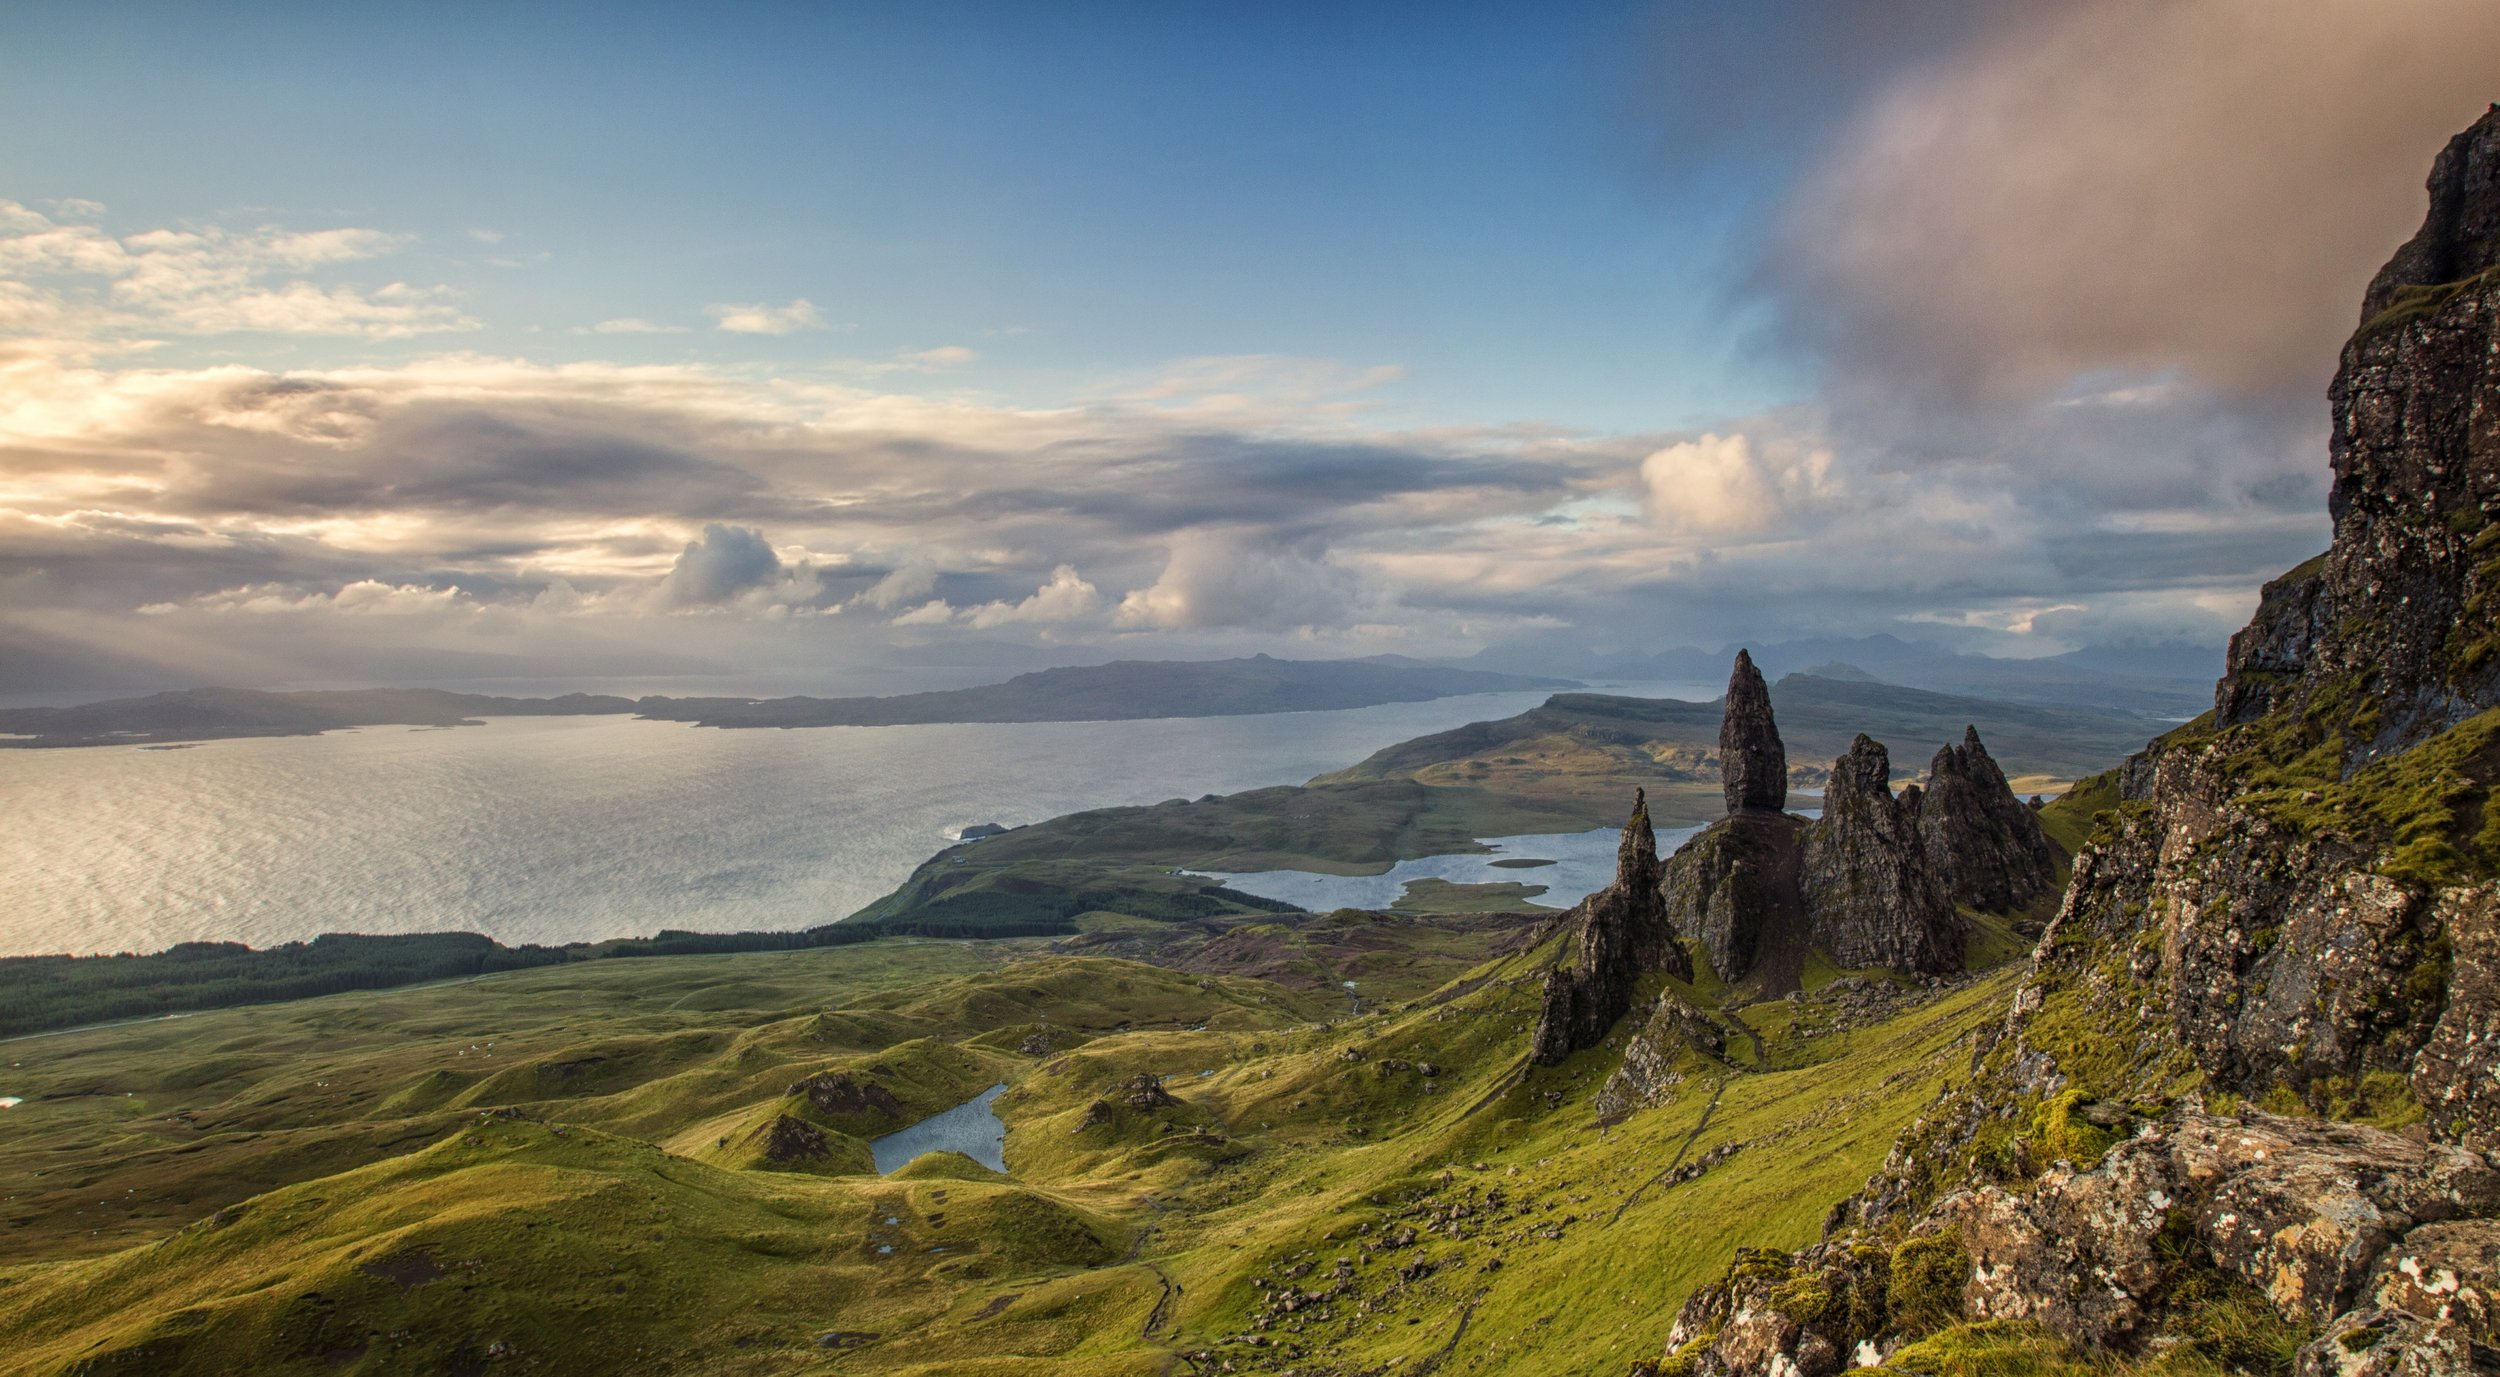 Skye has amazing hikes (for all levels of fitness) with breathtaking views.